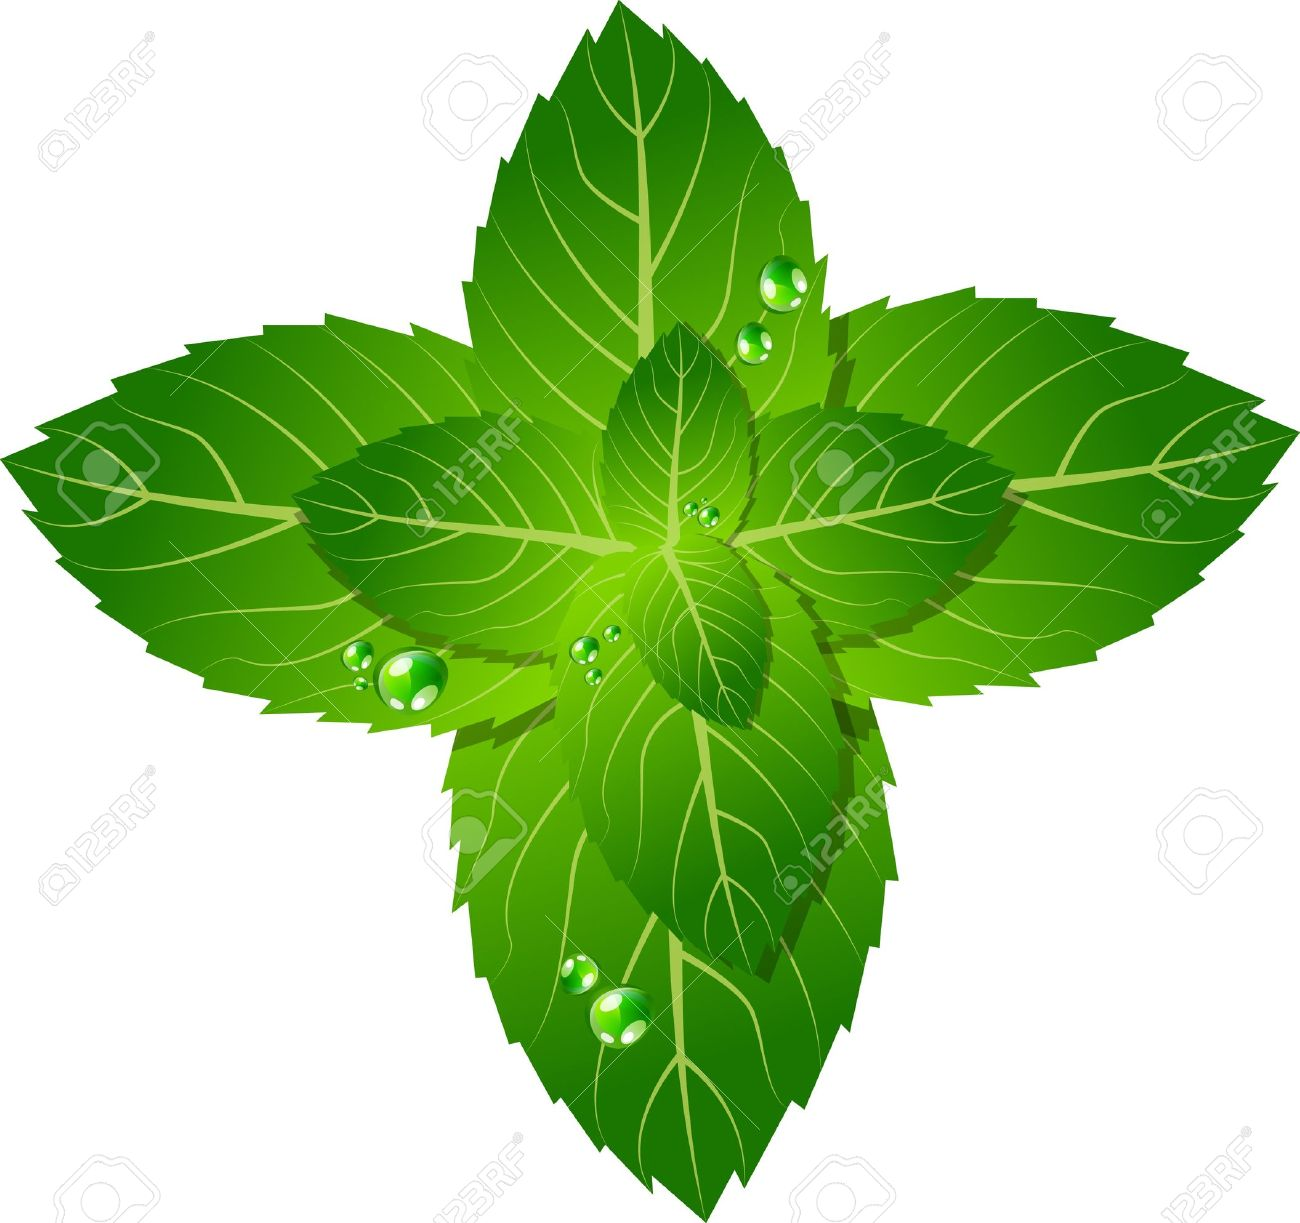 Picture Of Mint Leaf Royalty Free Cliparts, Vectors, And Stock.